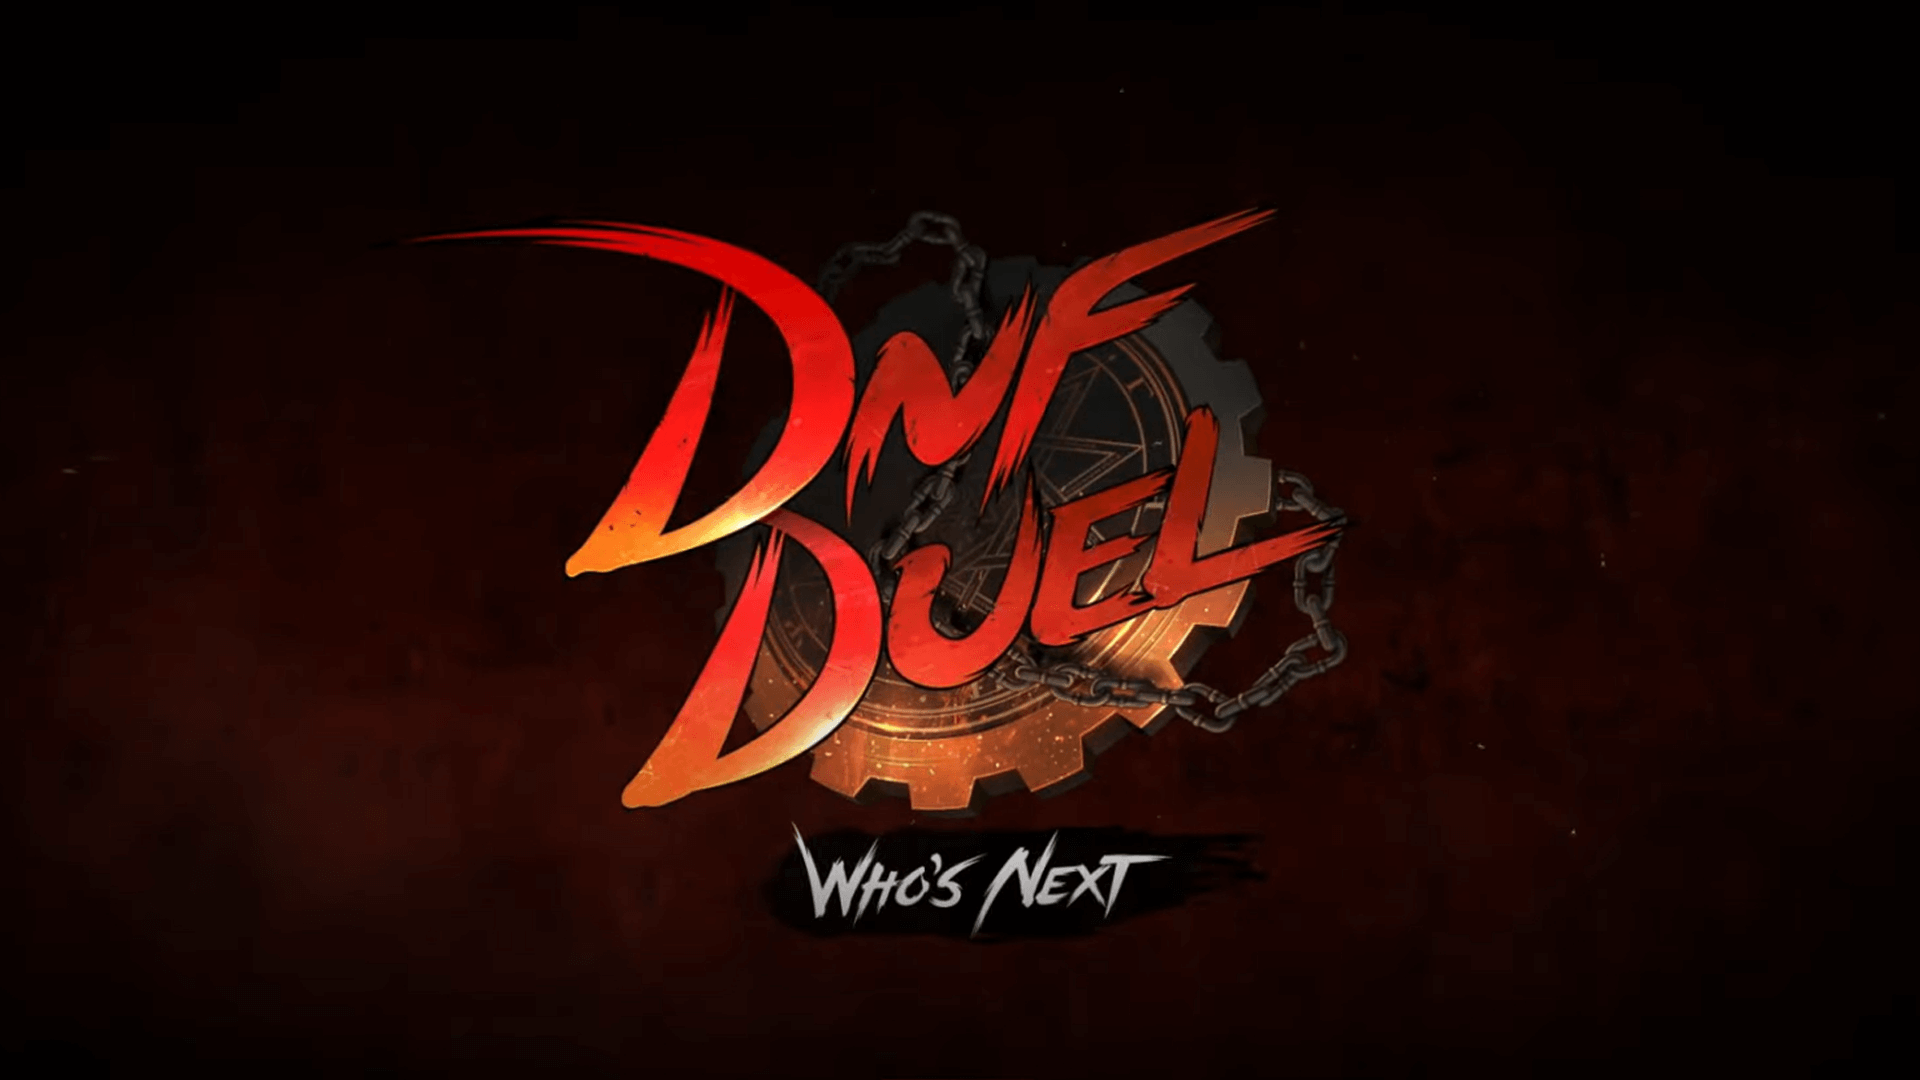 DNF Duel: A New Fighting Game from BlazBlue Devs